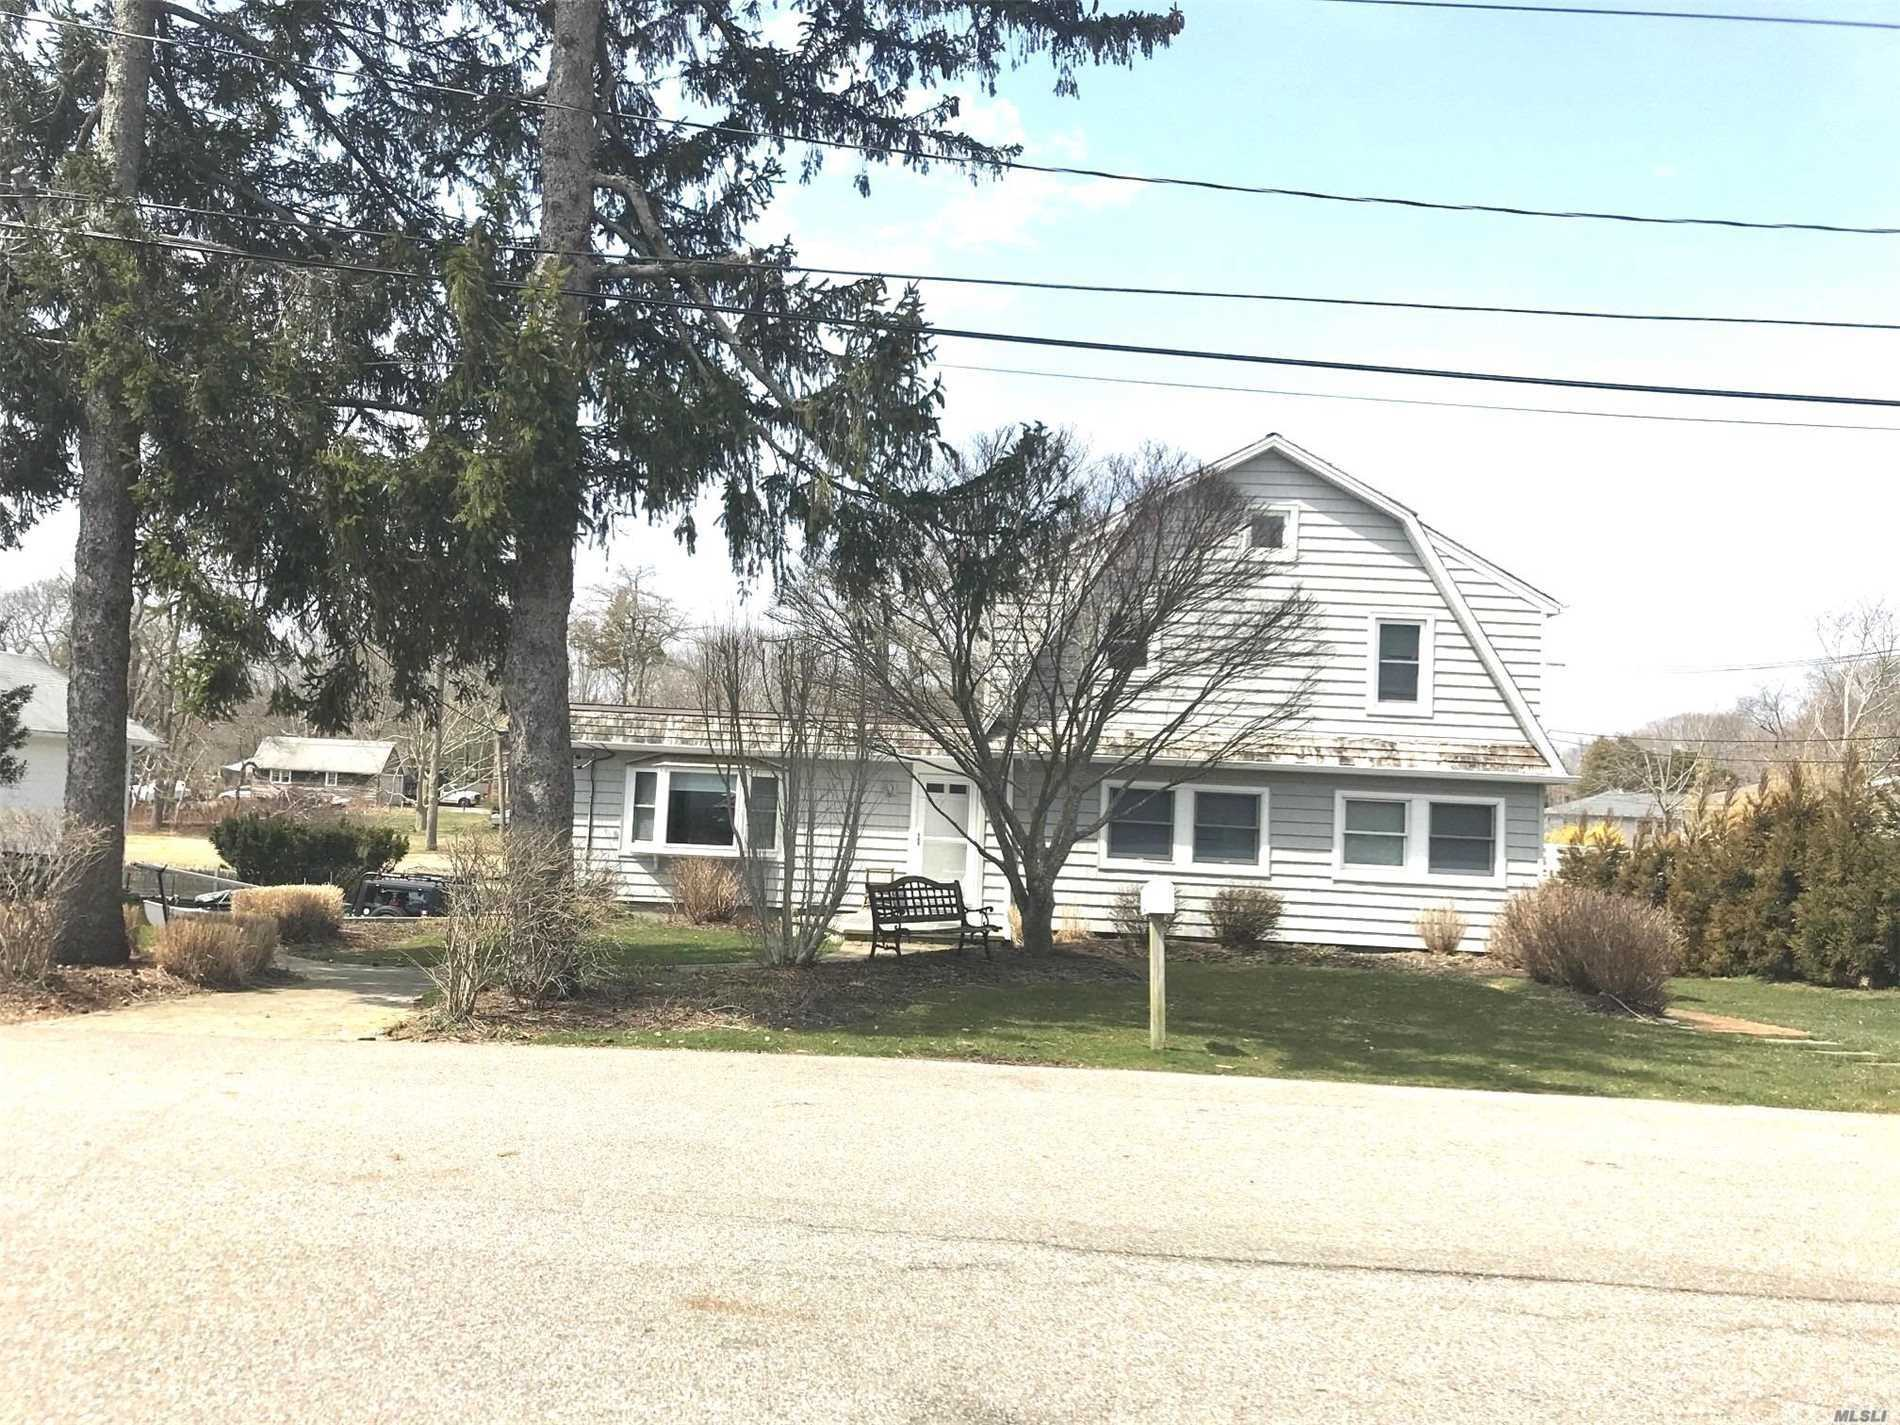 Beautiful Waterfront Rental With 100 Ft Of Bulk Heading. Large 2 Bedroom Apartment On First Floor Only. Very Modern With A Beautiful Kitchen, Living Room, Dining Room And Some Storage. Requires Credit Report And References.